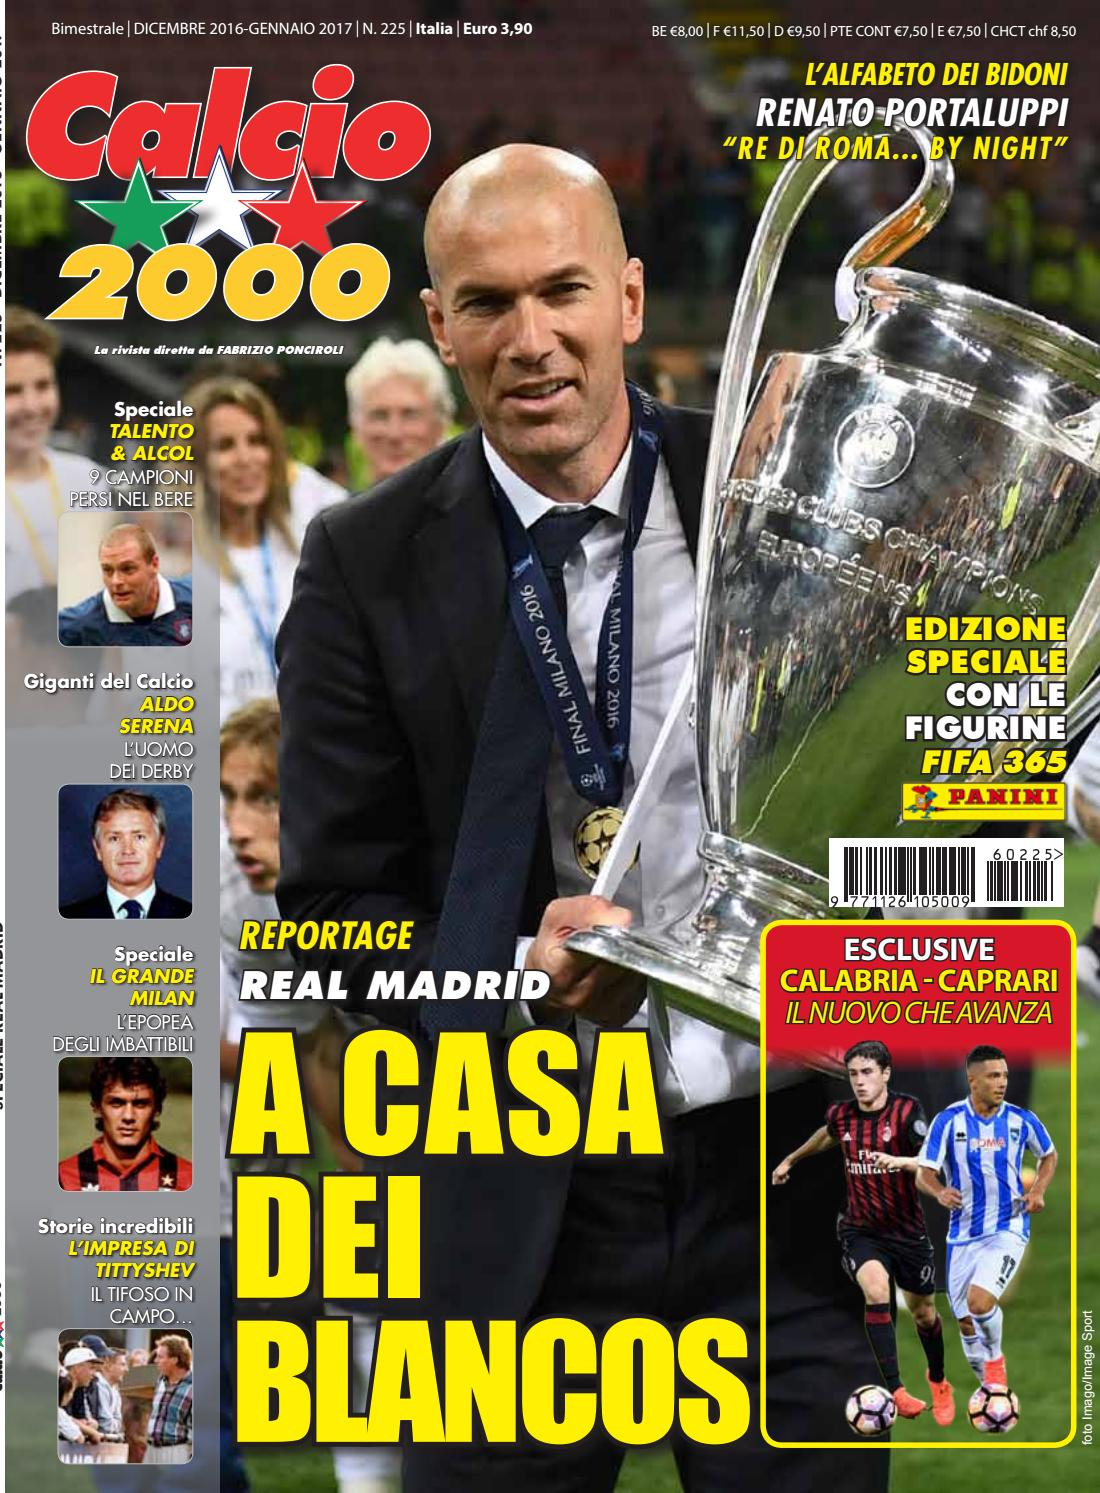 Calcio2000 n.225 by TC C SRL - issuu e89f2fc4d89b